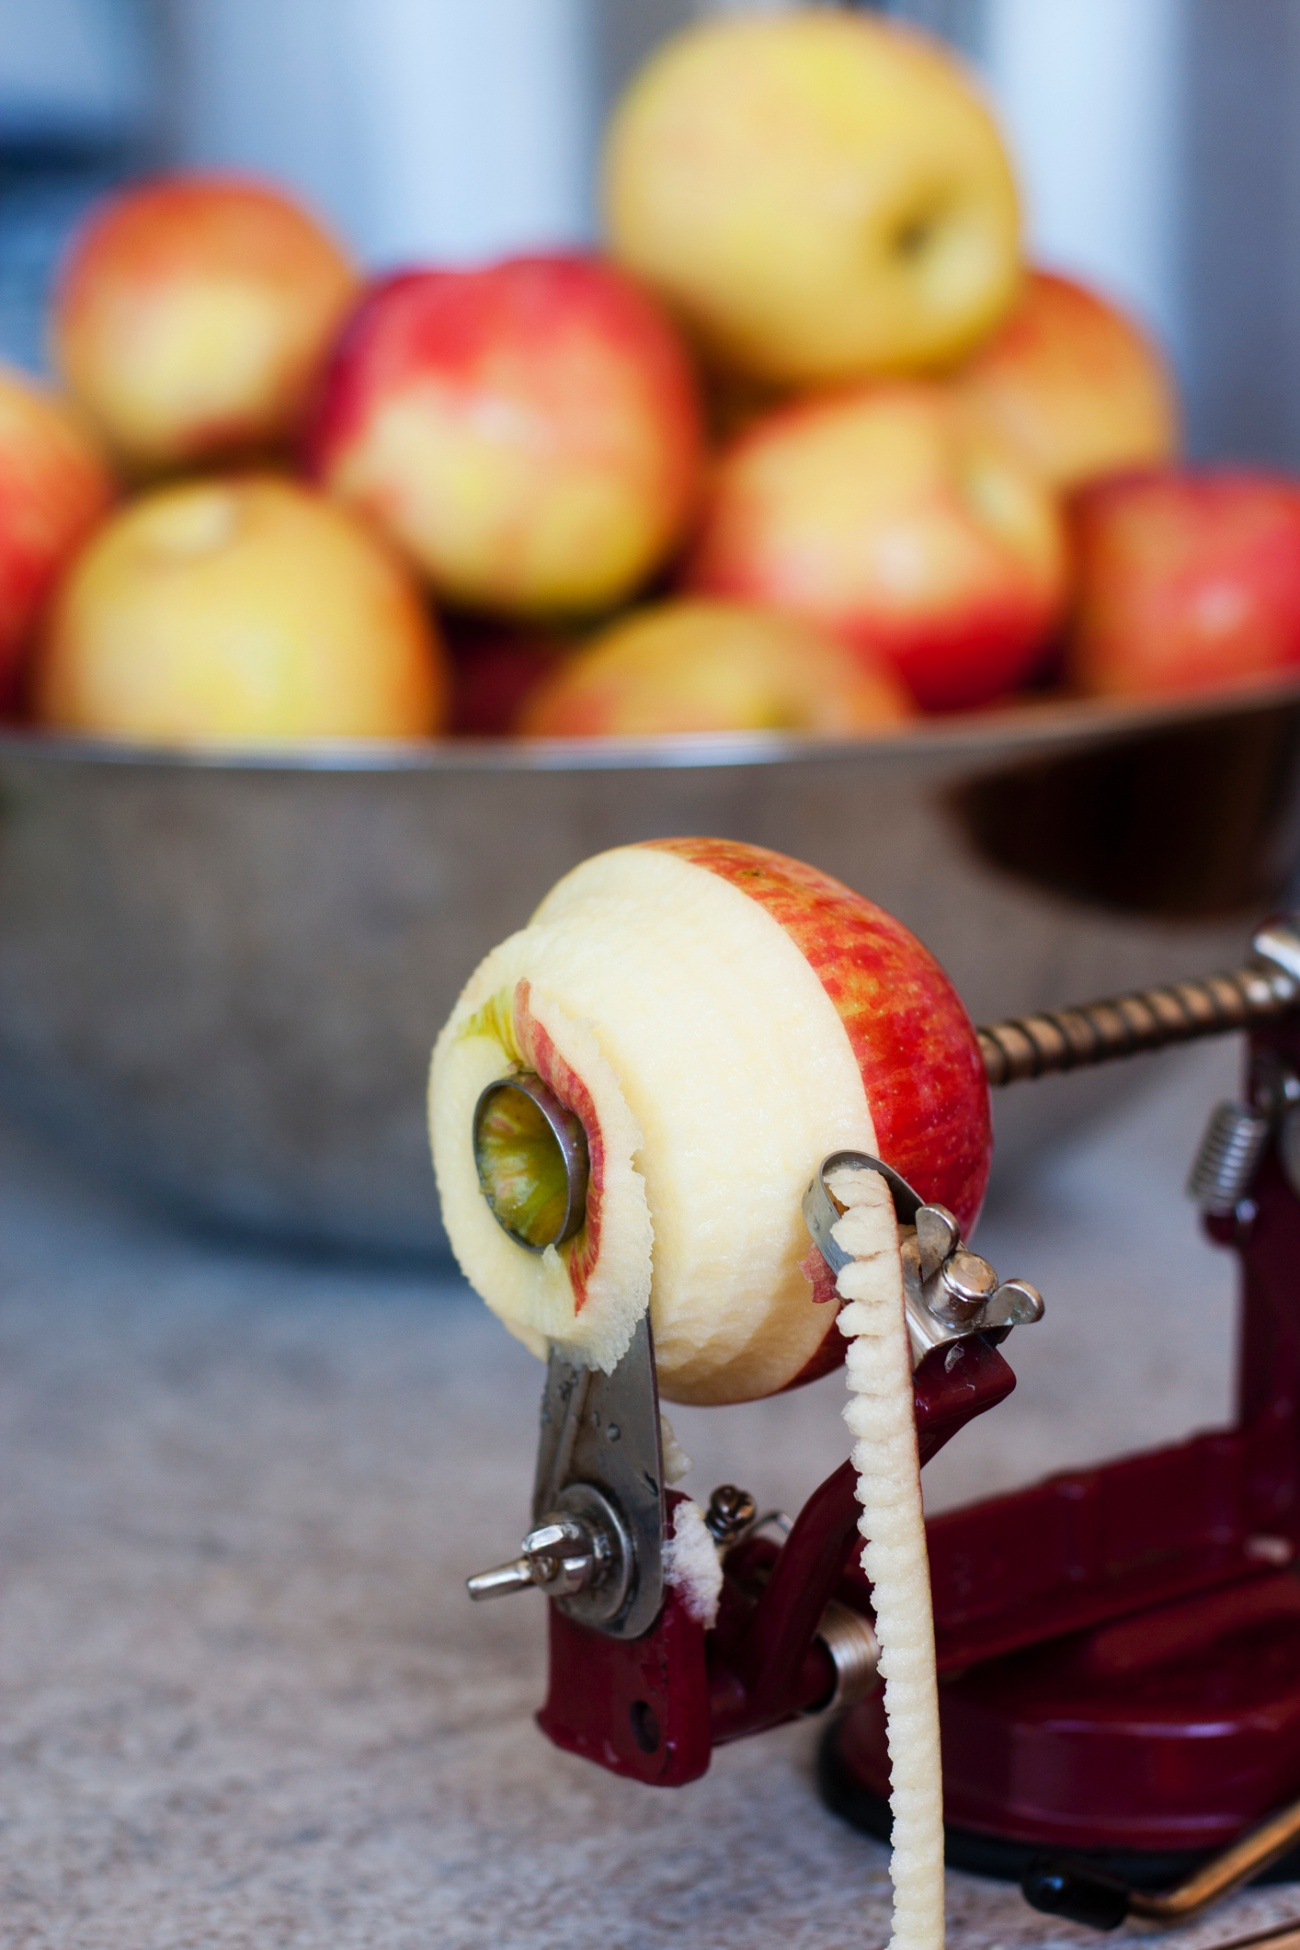 Peeling, Coring, and Slicing an Apple